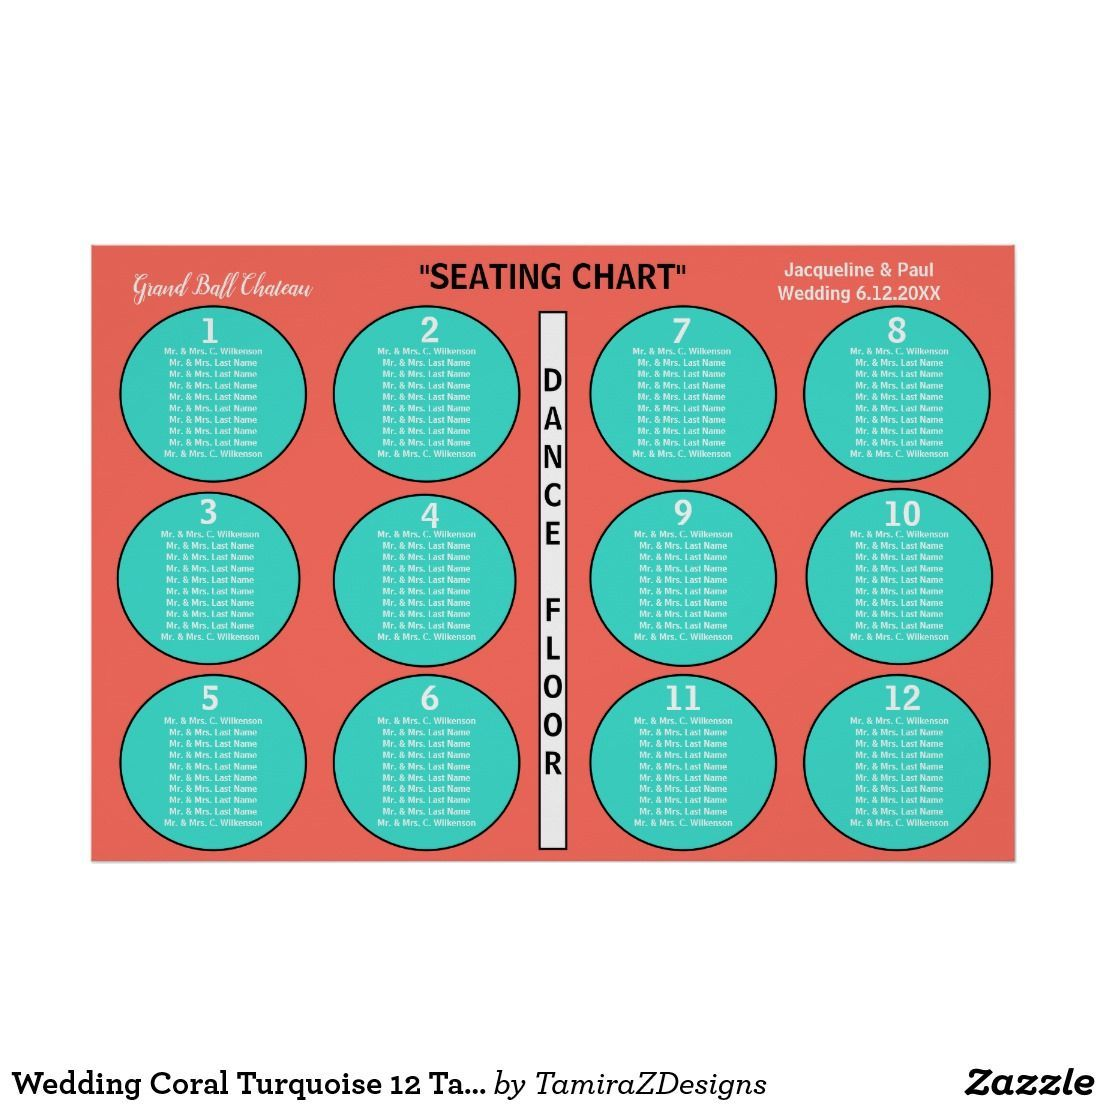 Wedding Coral Turquoise 12 Table Seating Chart | Zazzle.com #turquoisecoralweddings Pretty bright Coral Turquoise Wedding Summertime Beach Destination Theme.  12 Table Seating Chart Poster to Seat 10 or Less Guests at Each Table in Alphabetical Order.  Personalize it.  Original designs © TamiraZDesigns.  #bride #reception #wedding #coralturquoisewedding #coralwedding #seatingchart #turquoisecoralweddings